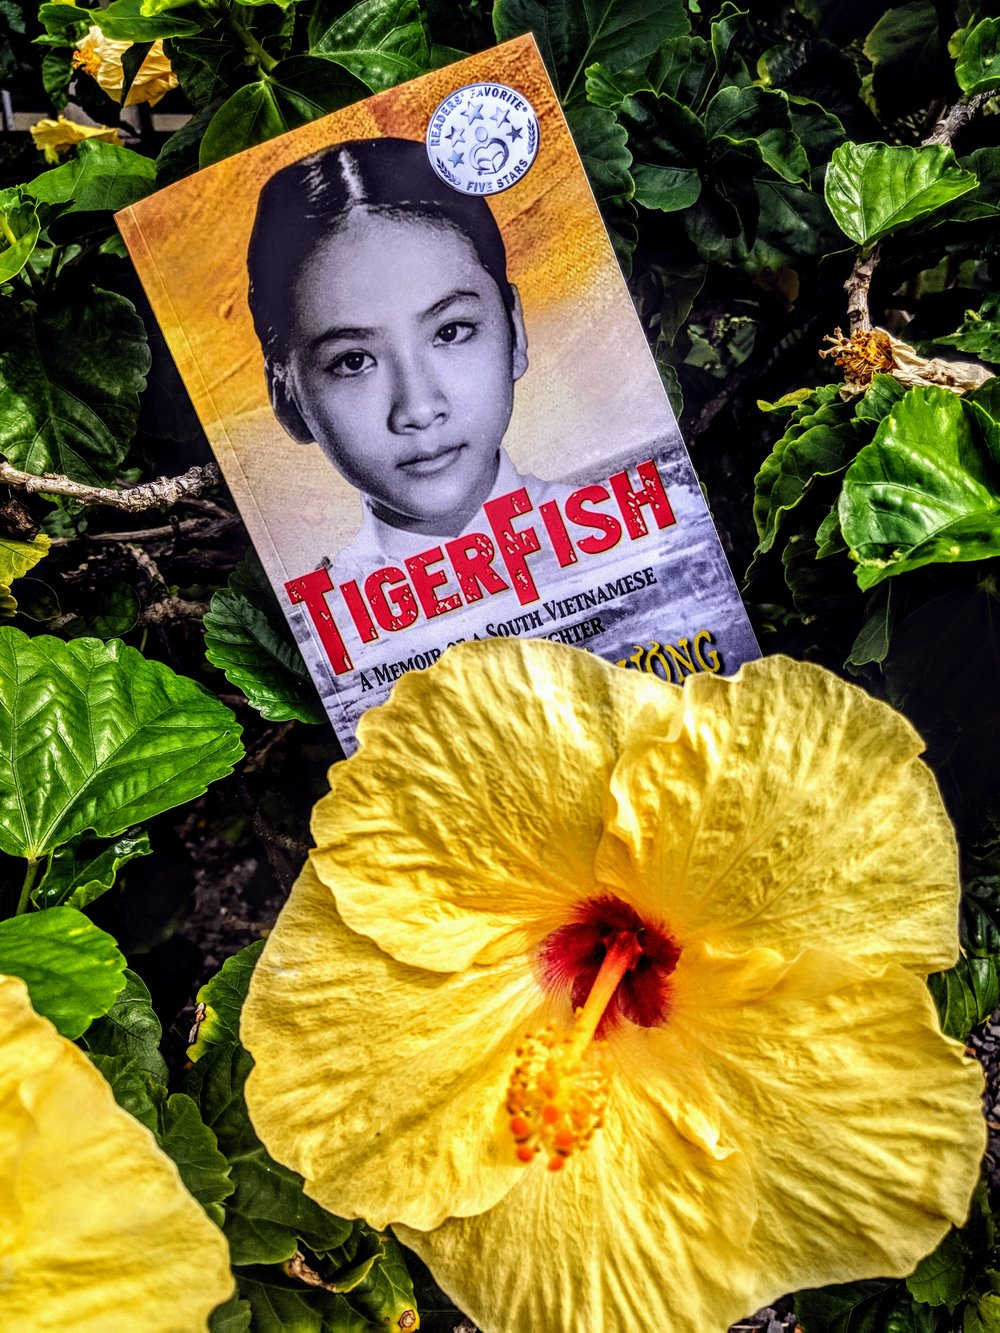 TigerFish, a memoir